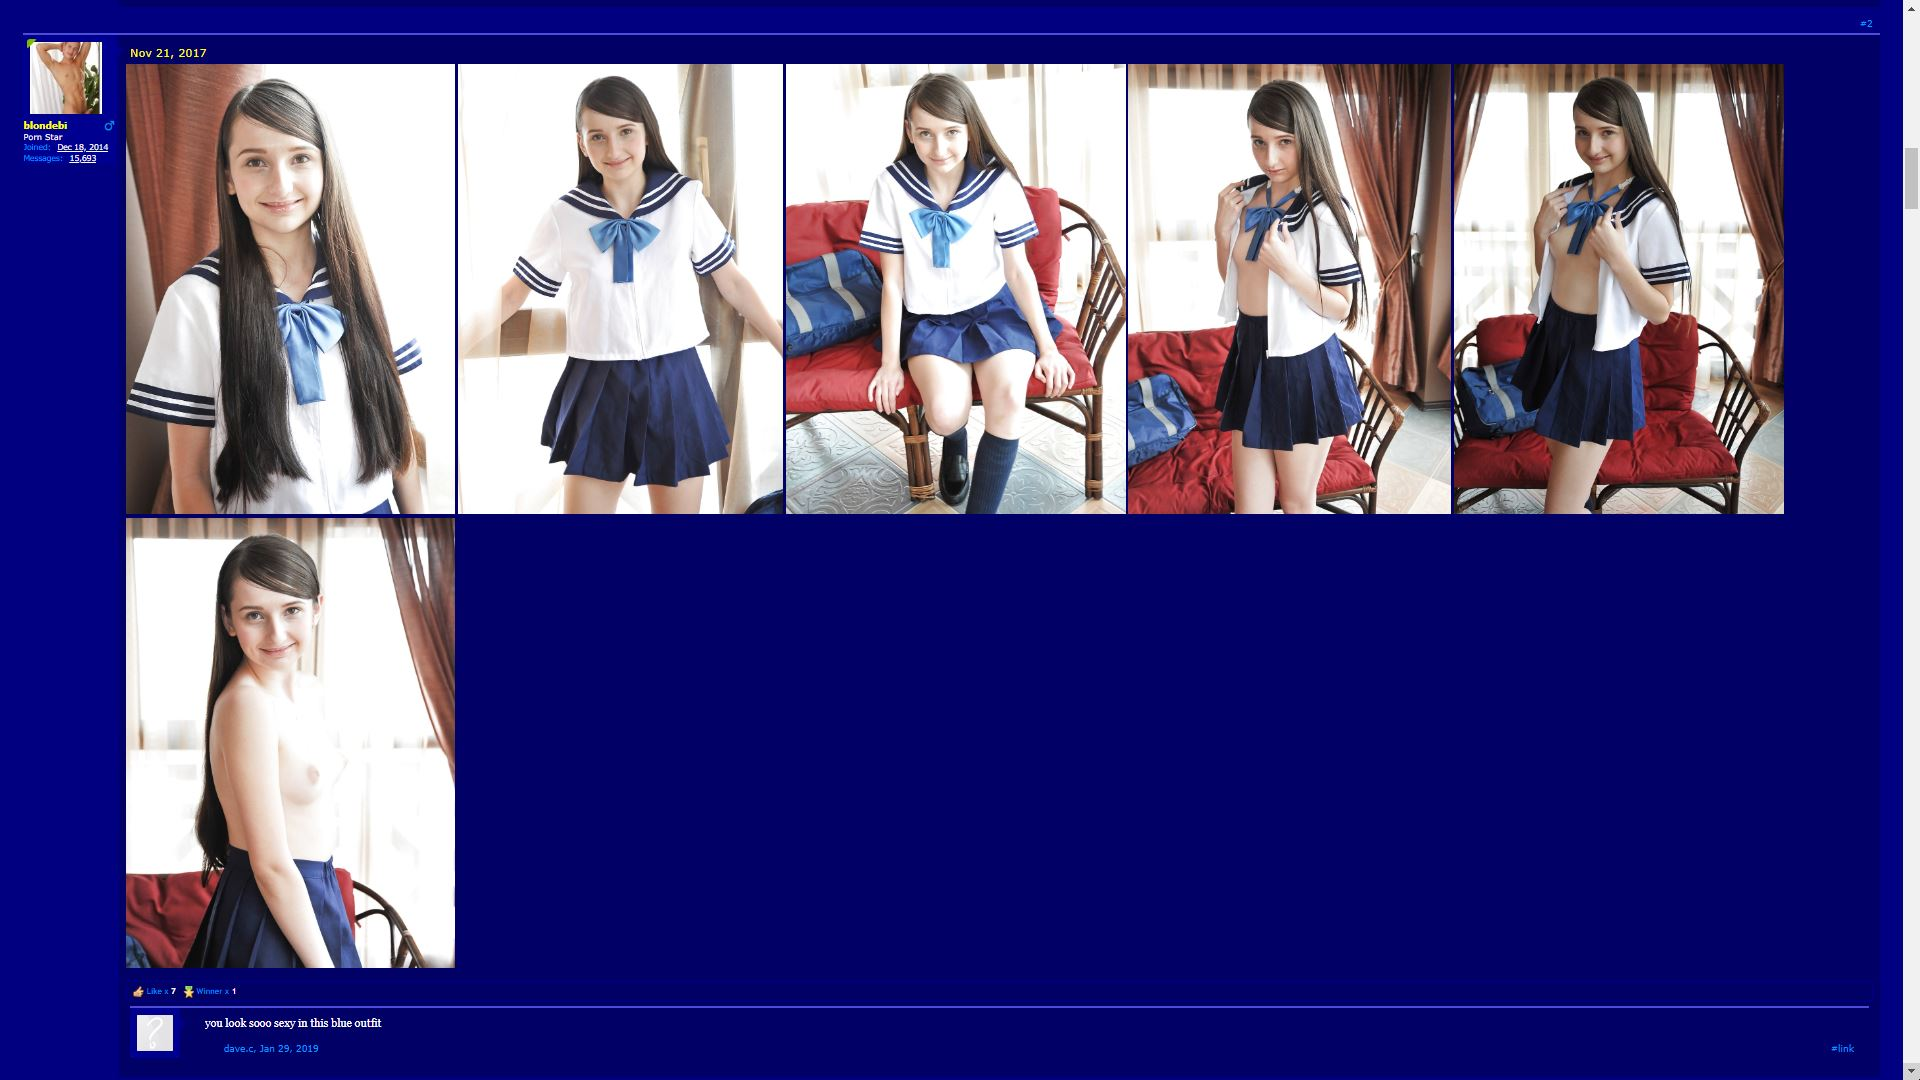 XNXX Forums Uniform